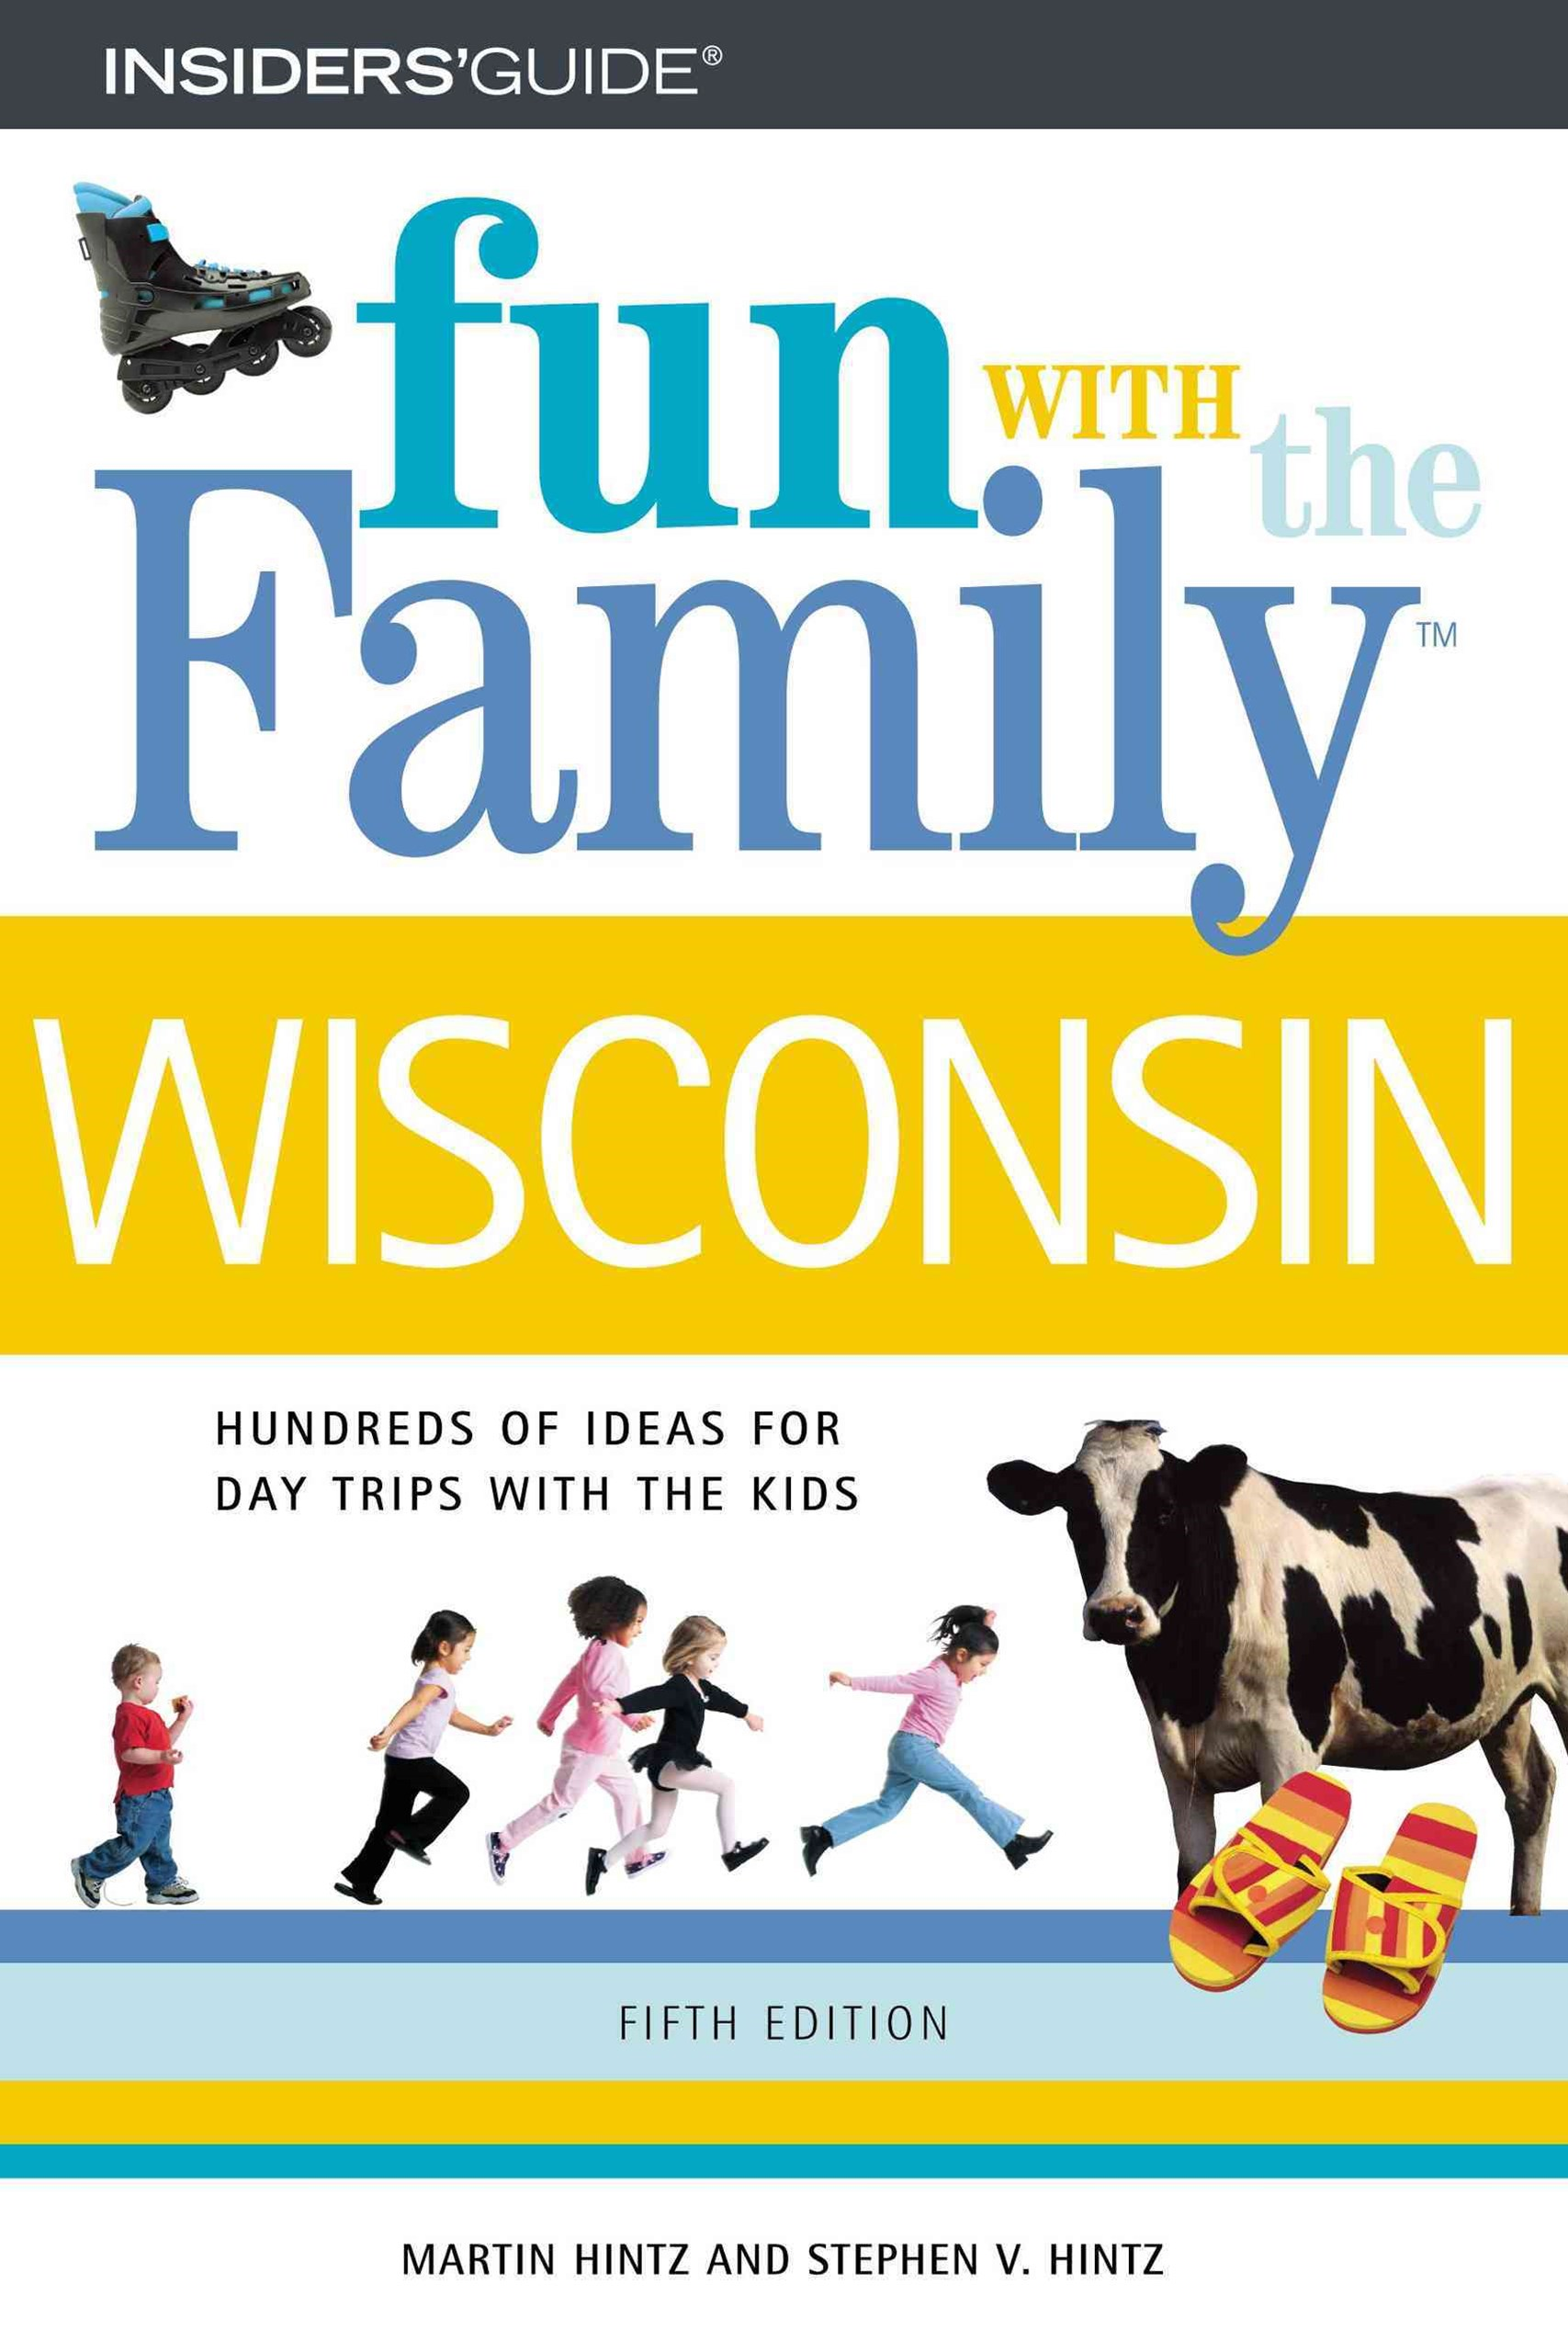 Wisconsin - Fun with the Family